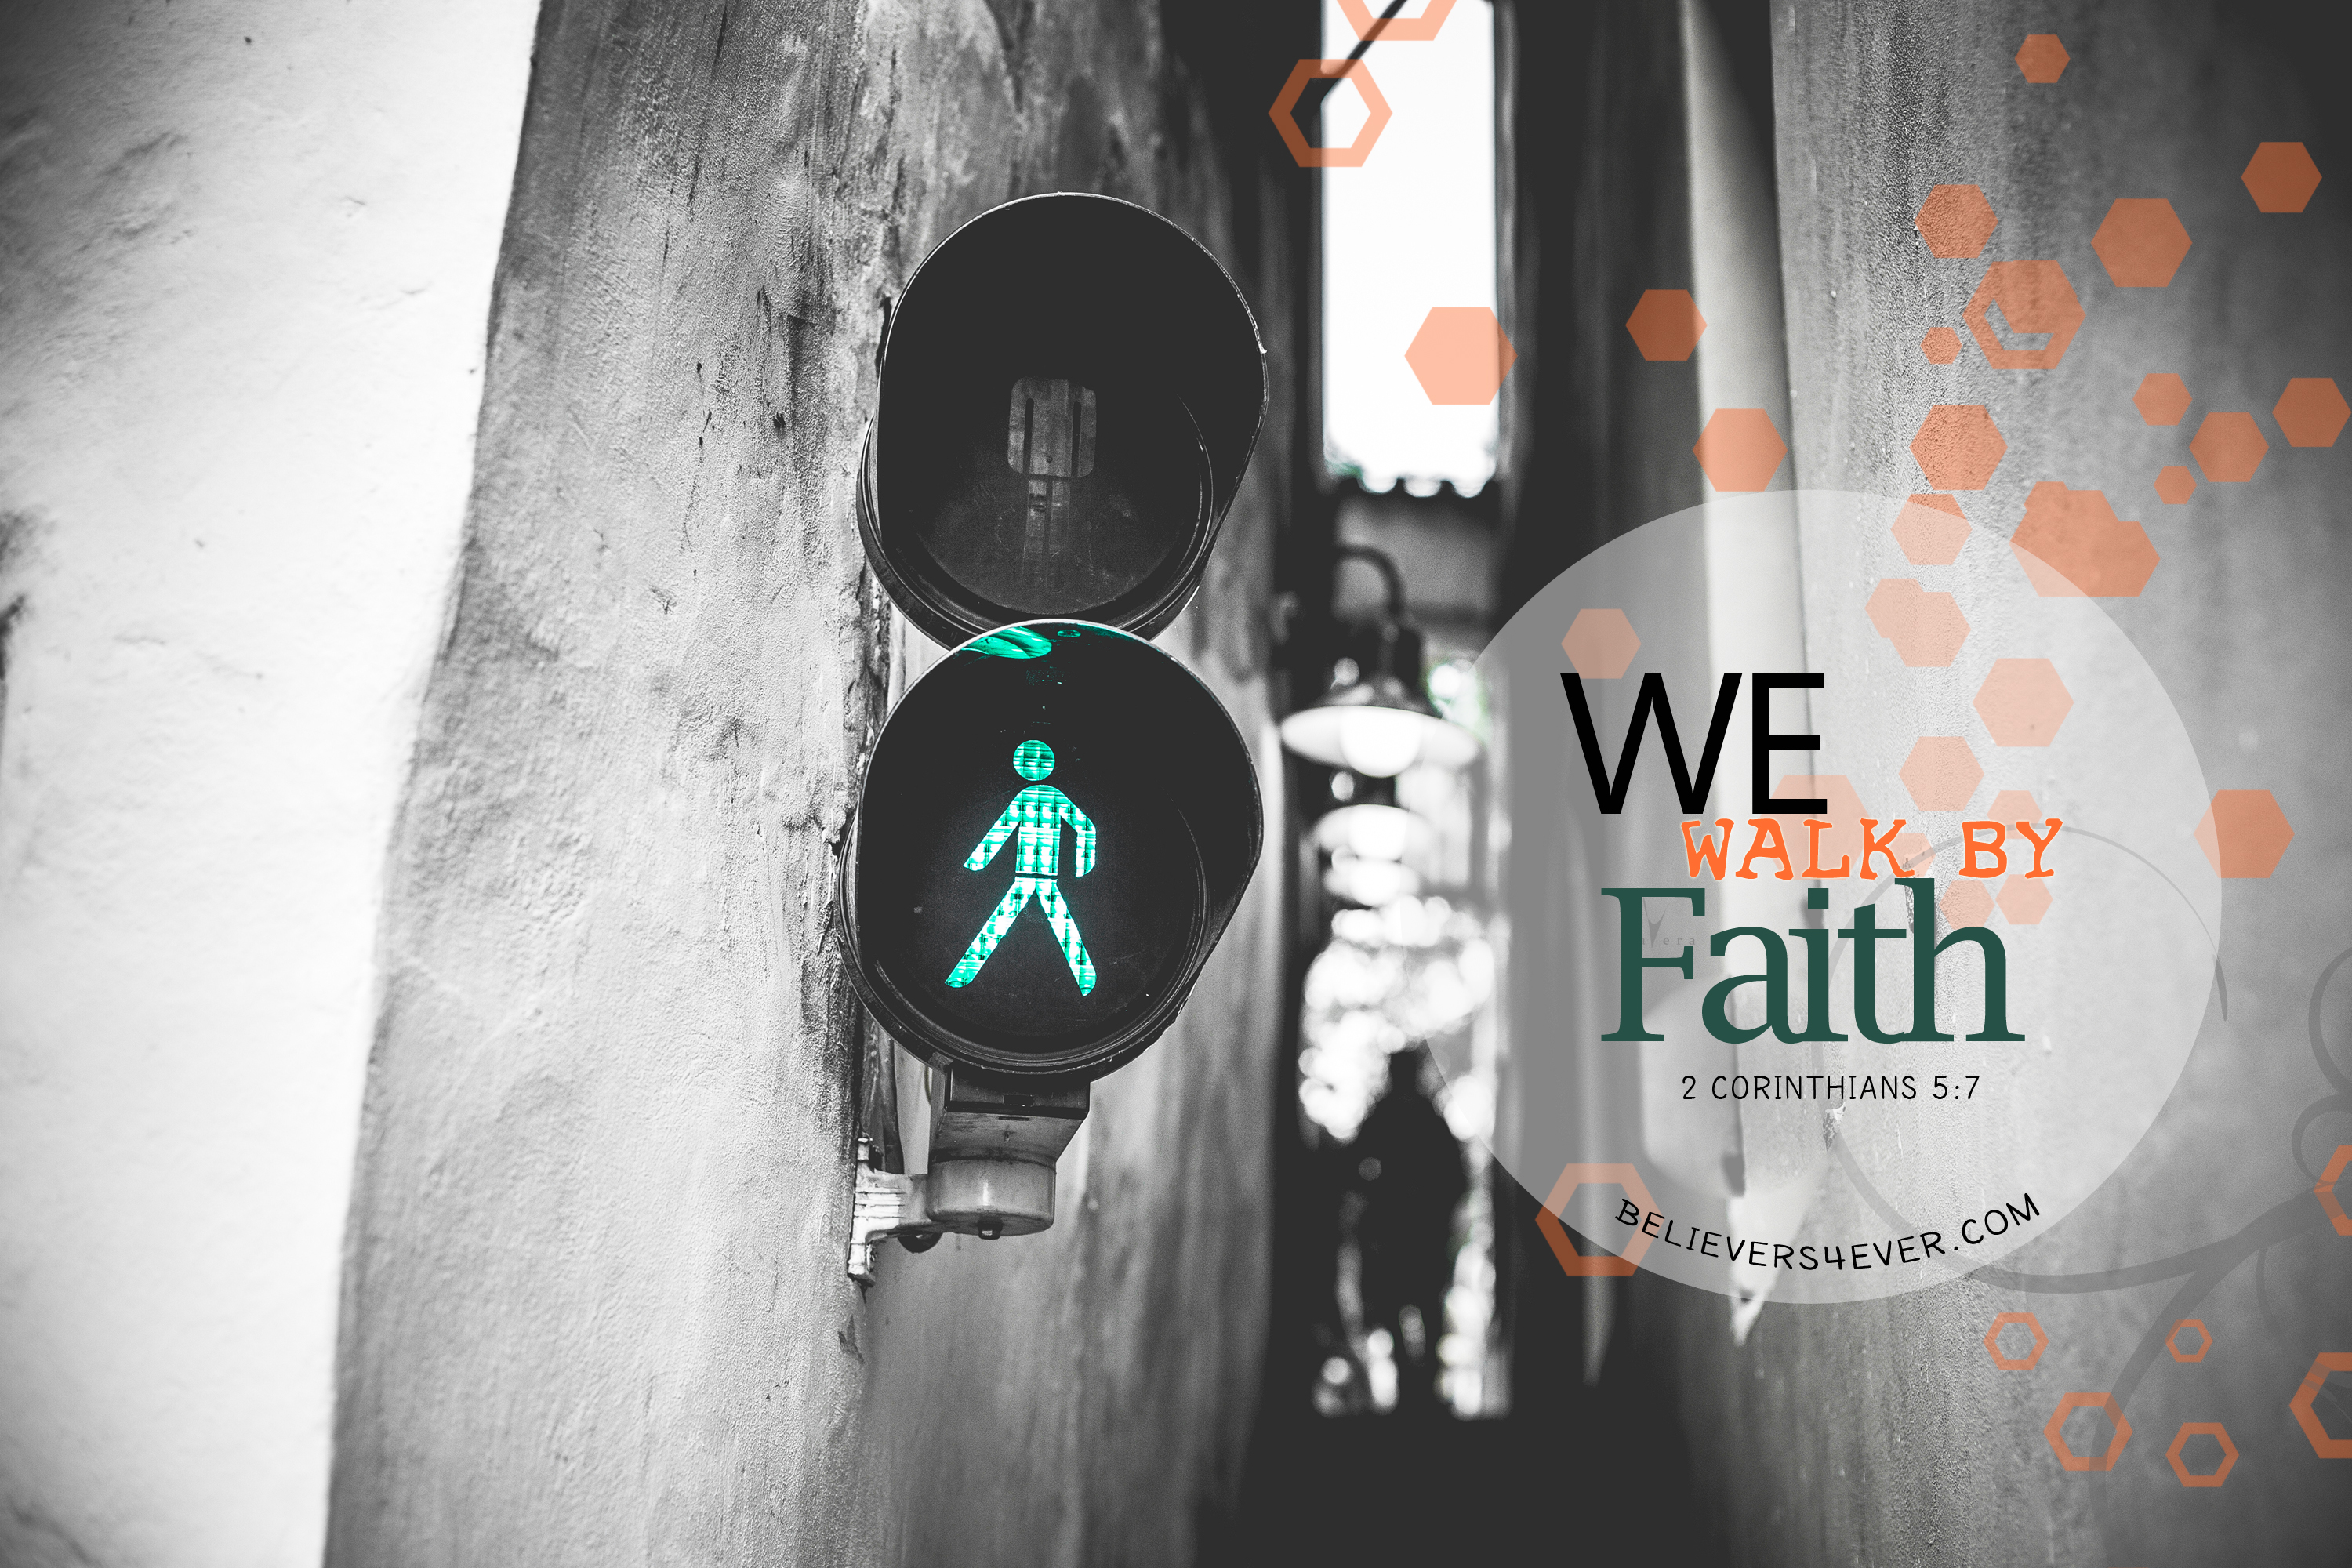 We walk by faith. Free Christian desktop wallpaper. 2 Corinthians 5:7